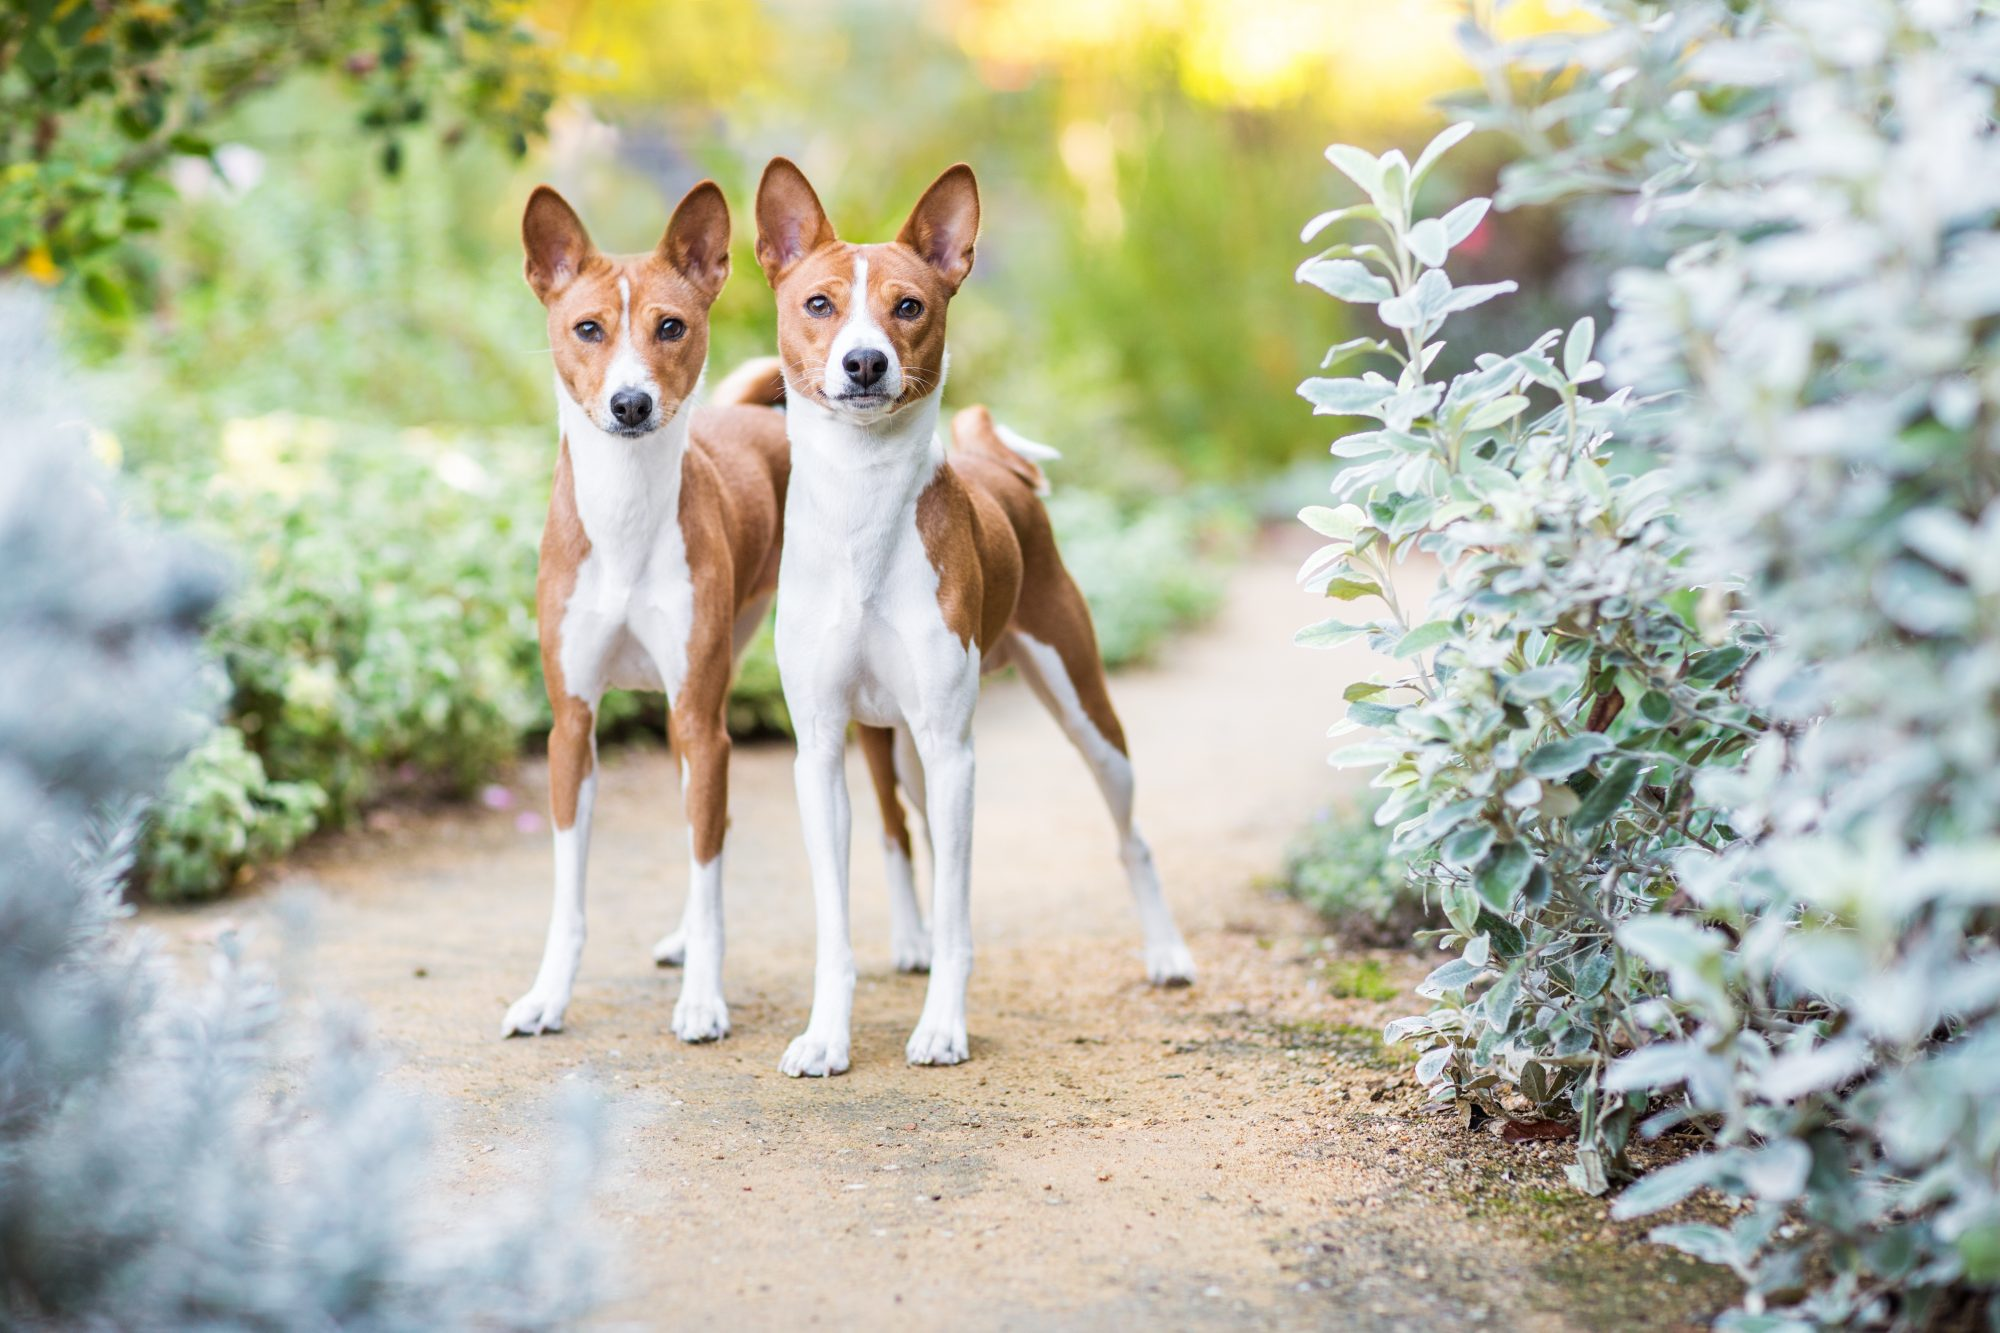 Two Basenji dogs stare intently while standing side-by-side on a dirt path through a cultivated garden